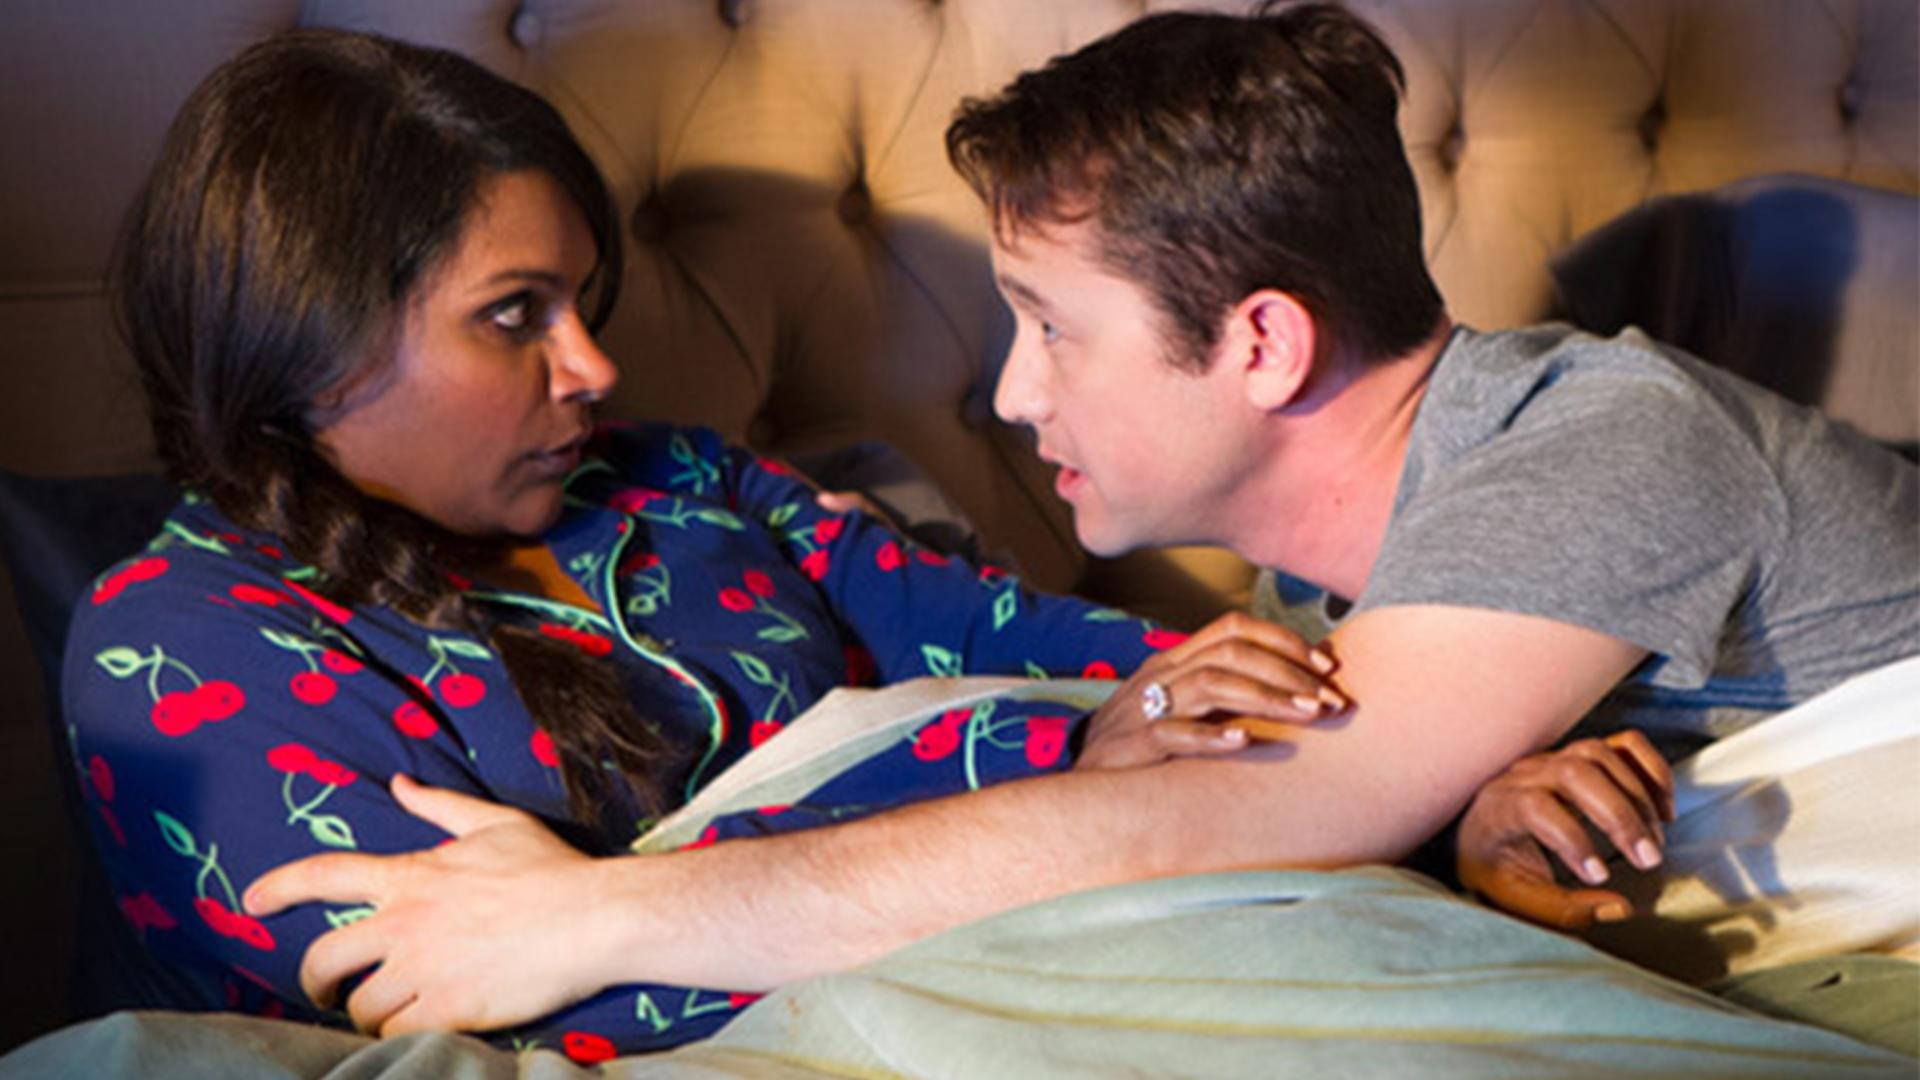 'The Mindy Project' Review: New Hulu Home Sees Comedy In Top Form